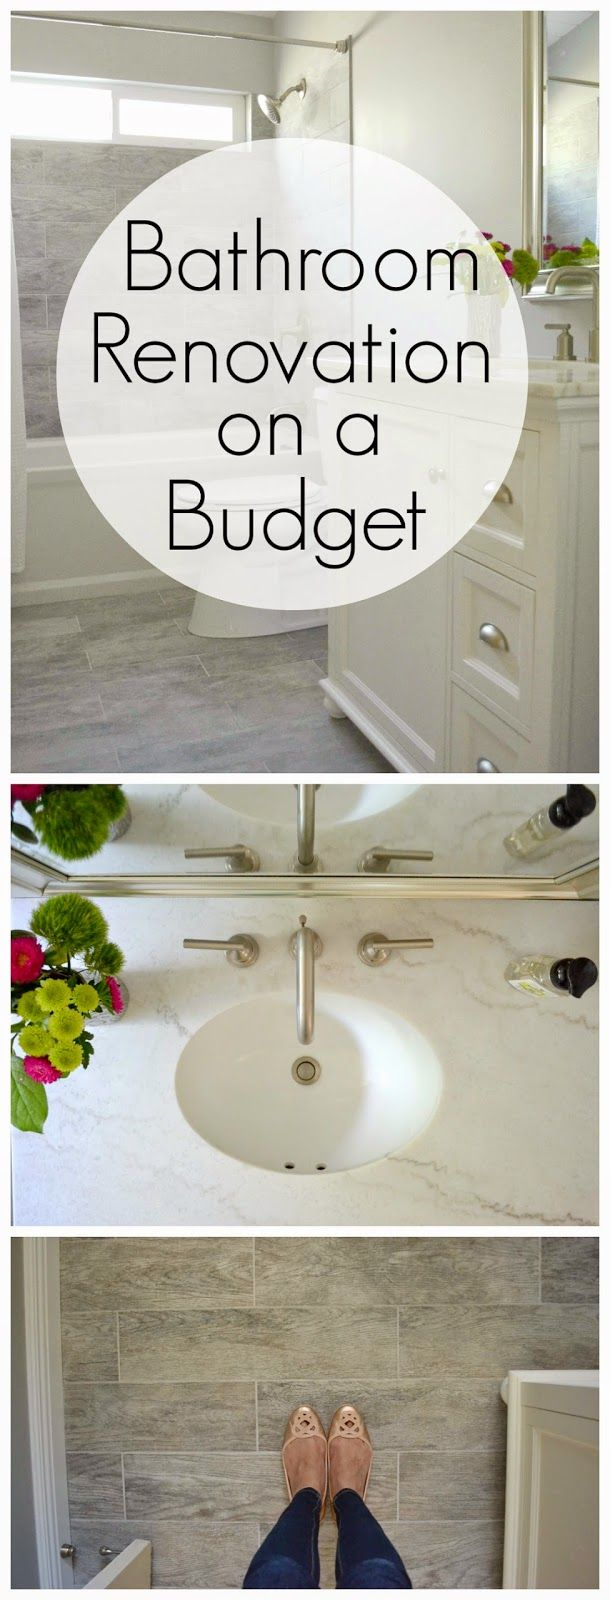 10 DIY Cool And Chic Decoration Ideas For Bathrooms 2   Behr marquee ...